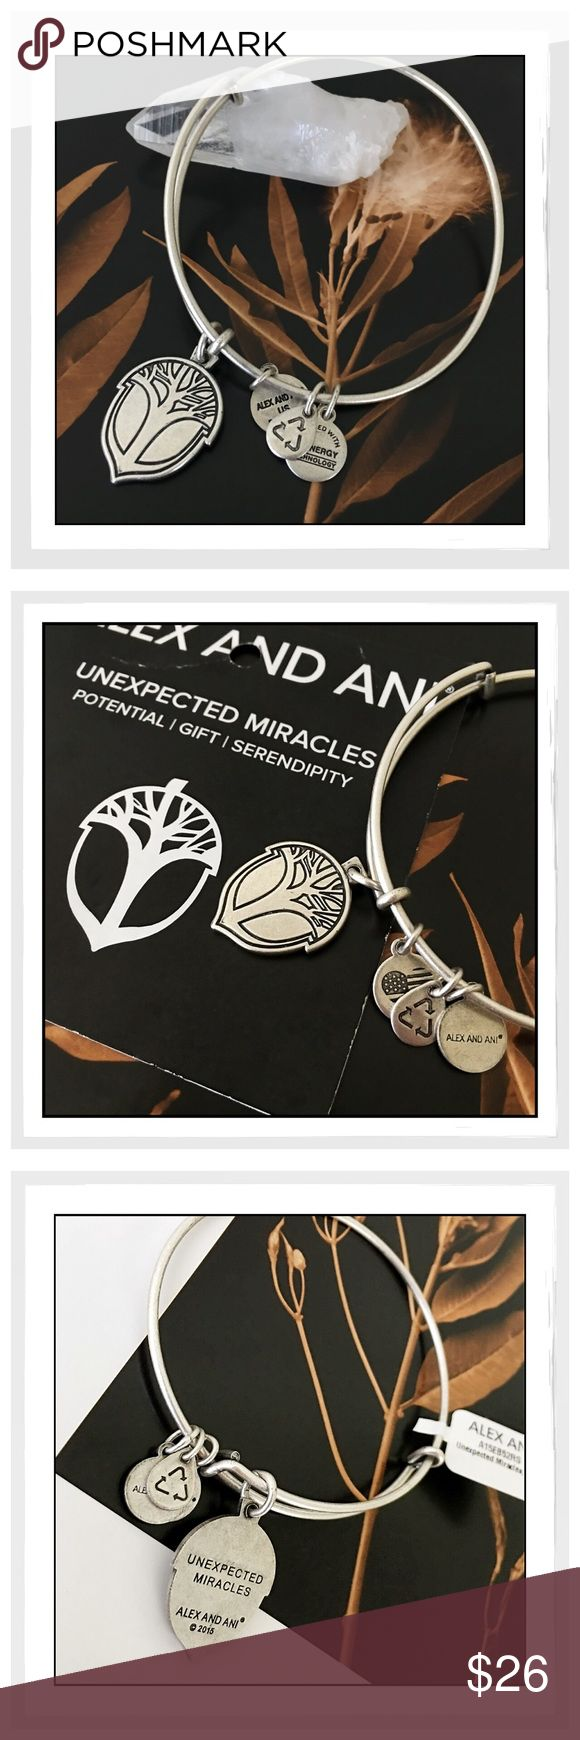 ✨Alex & Ani Unexpected Miracles Bracelet✨ ✨Alex & Ani Unexpected Miracles Bracelet✨This Is The Original Unexpected Miracles Bangle In Rafaelian Silver Finish✨Brand NEW with Tags✨This is a Discontinued Style✨Expandable To Fit Most Wrists✨Comes With Energy Card✨ Alex & Ani Jewelry Bracelets